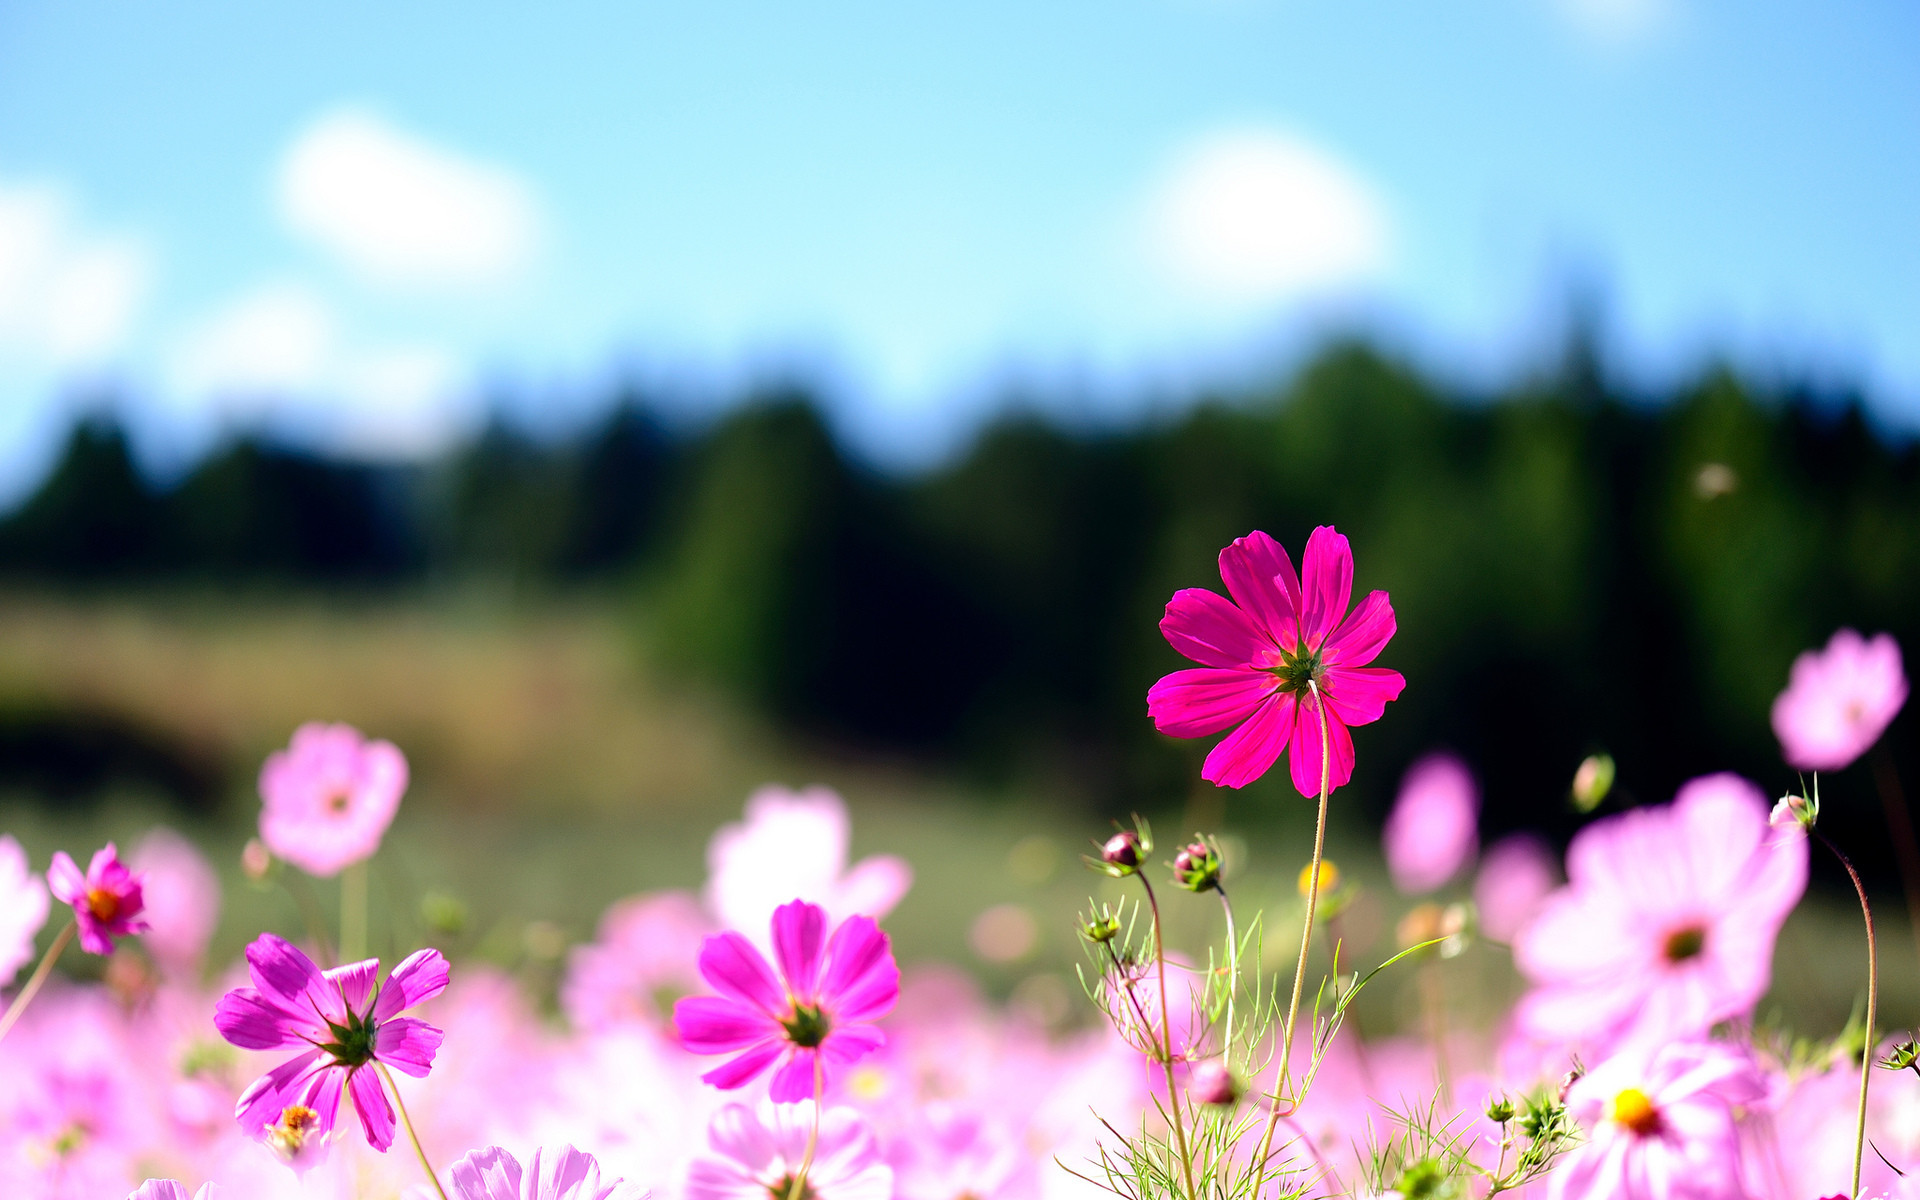 Desktop wallpapers flowers 73 background pictures 2560x1600 beautiful nature spring flower wallpaper mightylinksfo